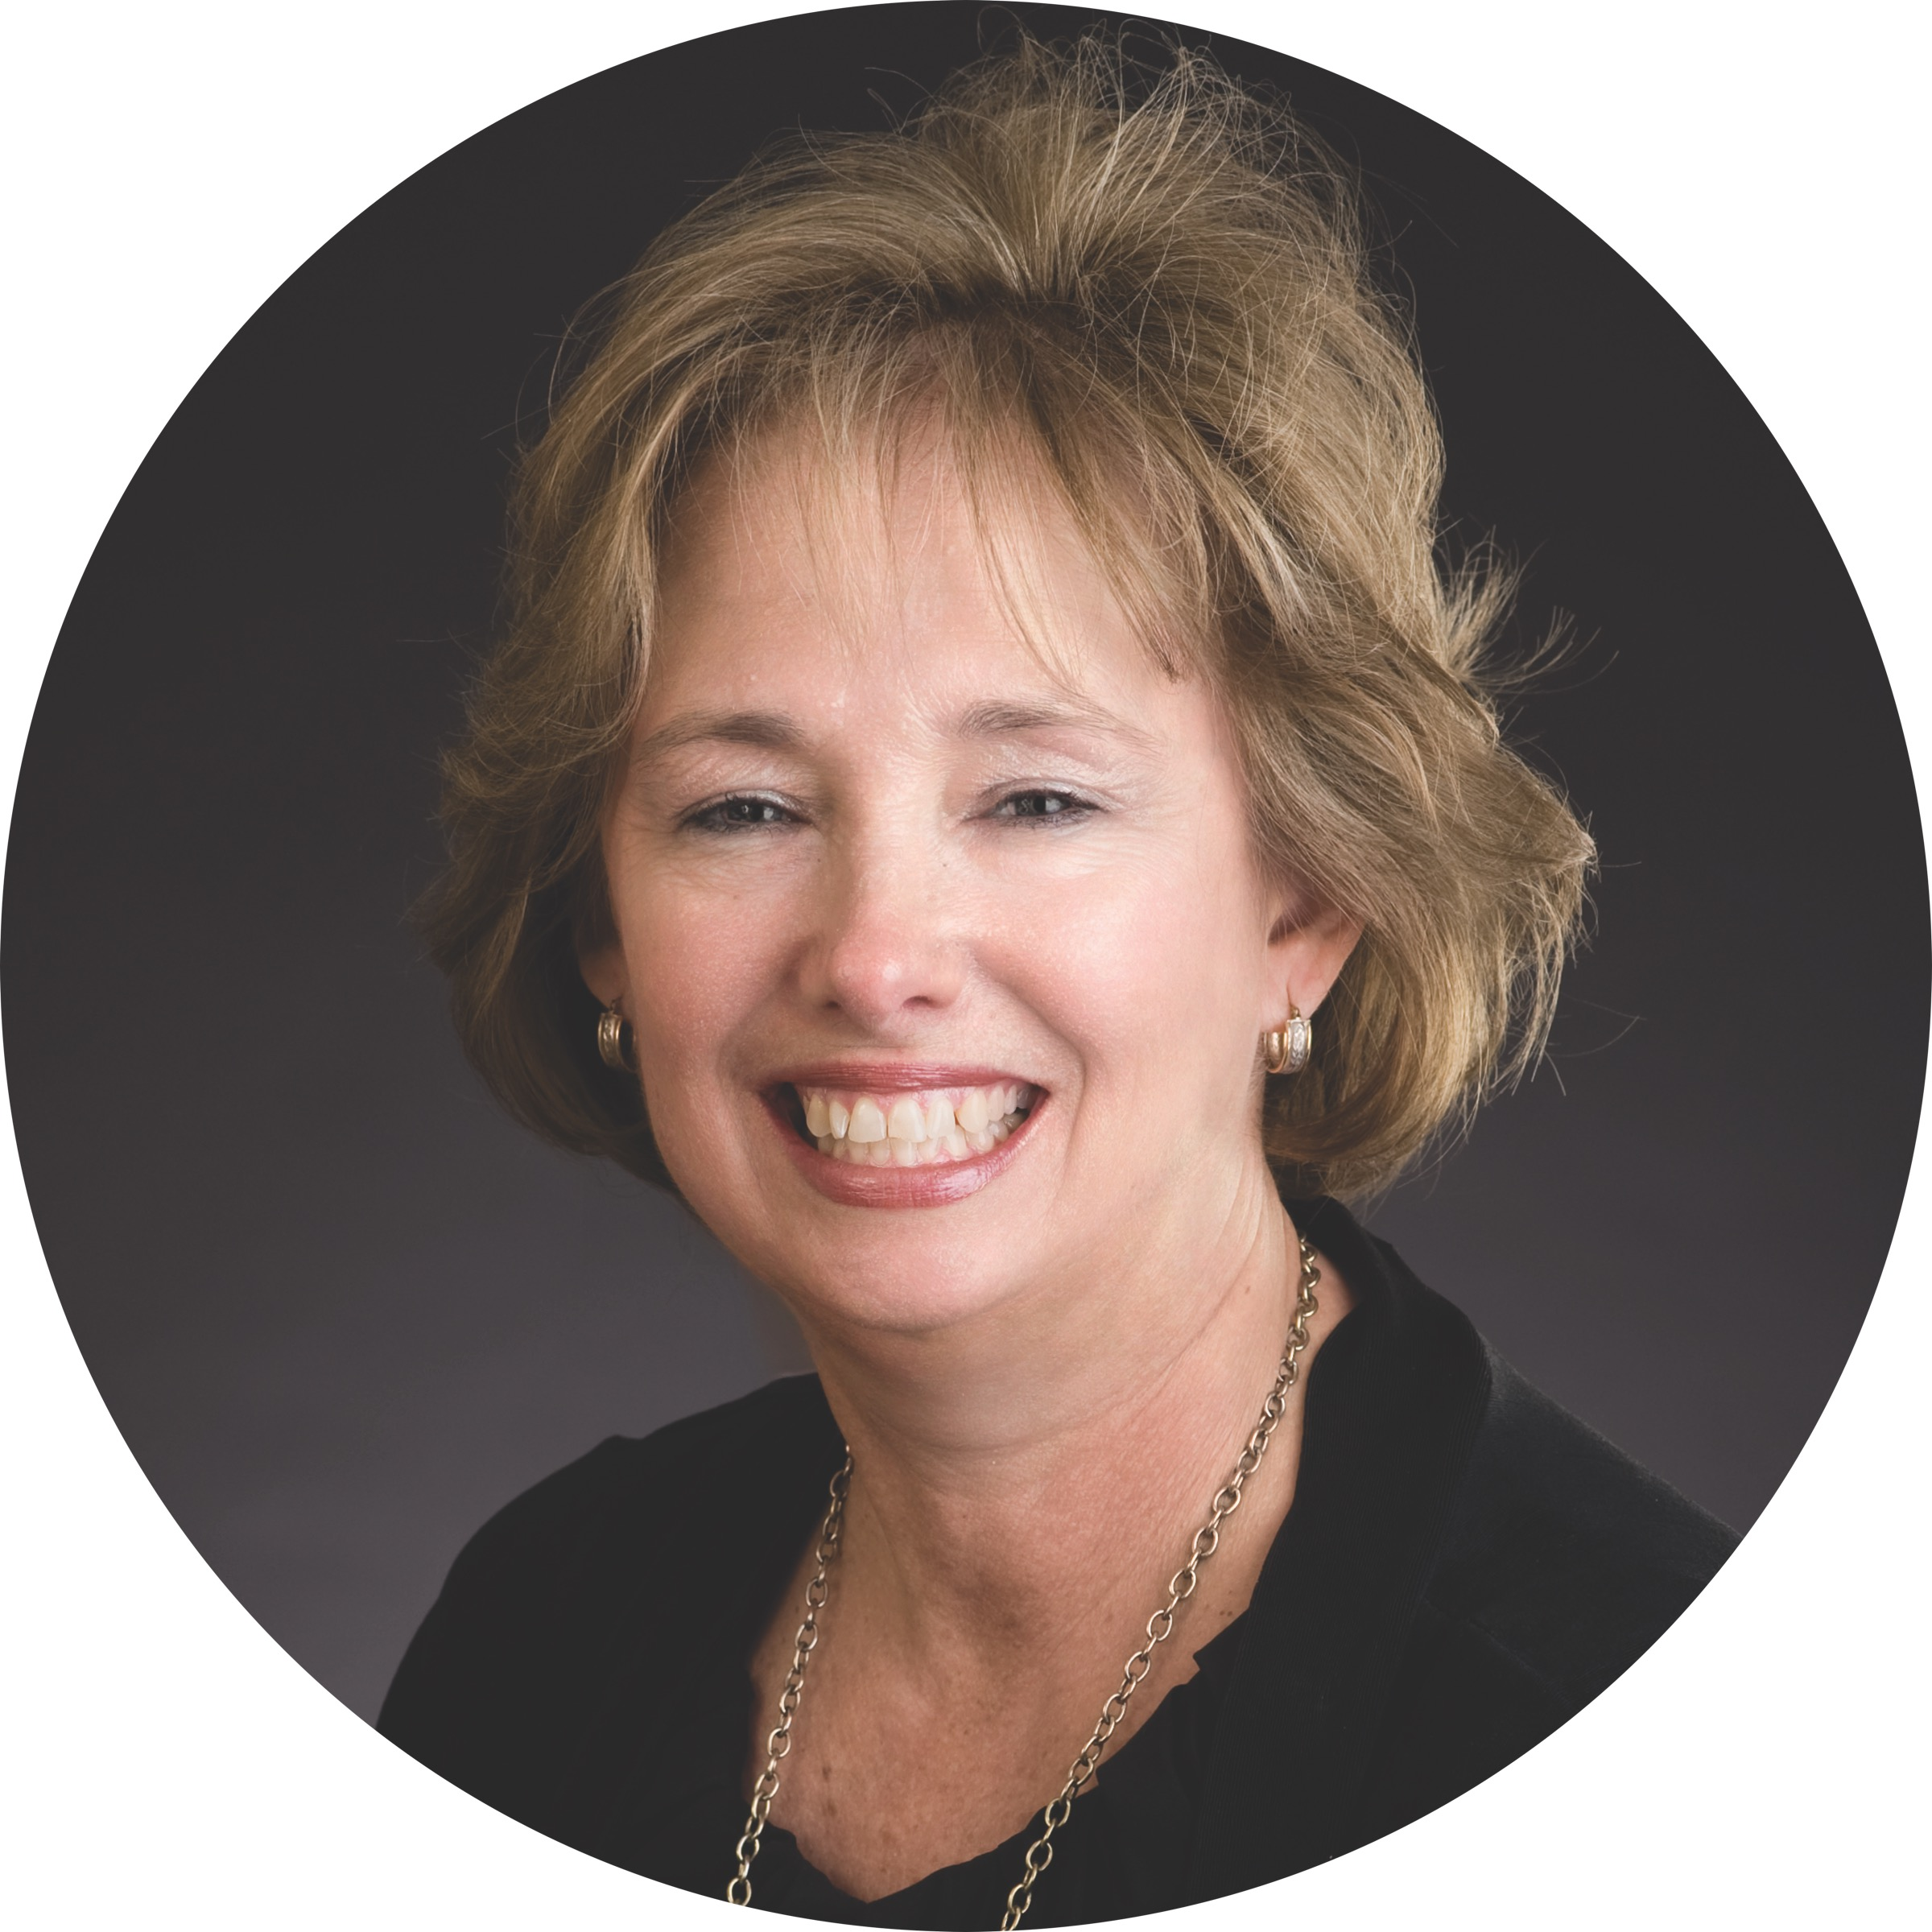 Laurie Labarca - Vice-President and COO, Via Christi Health